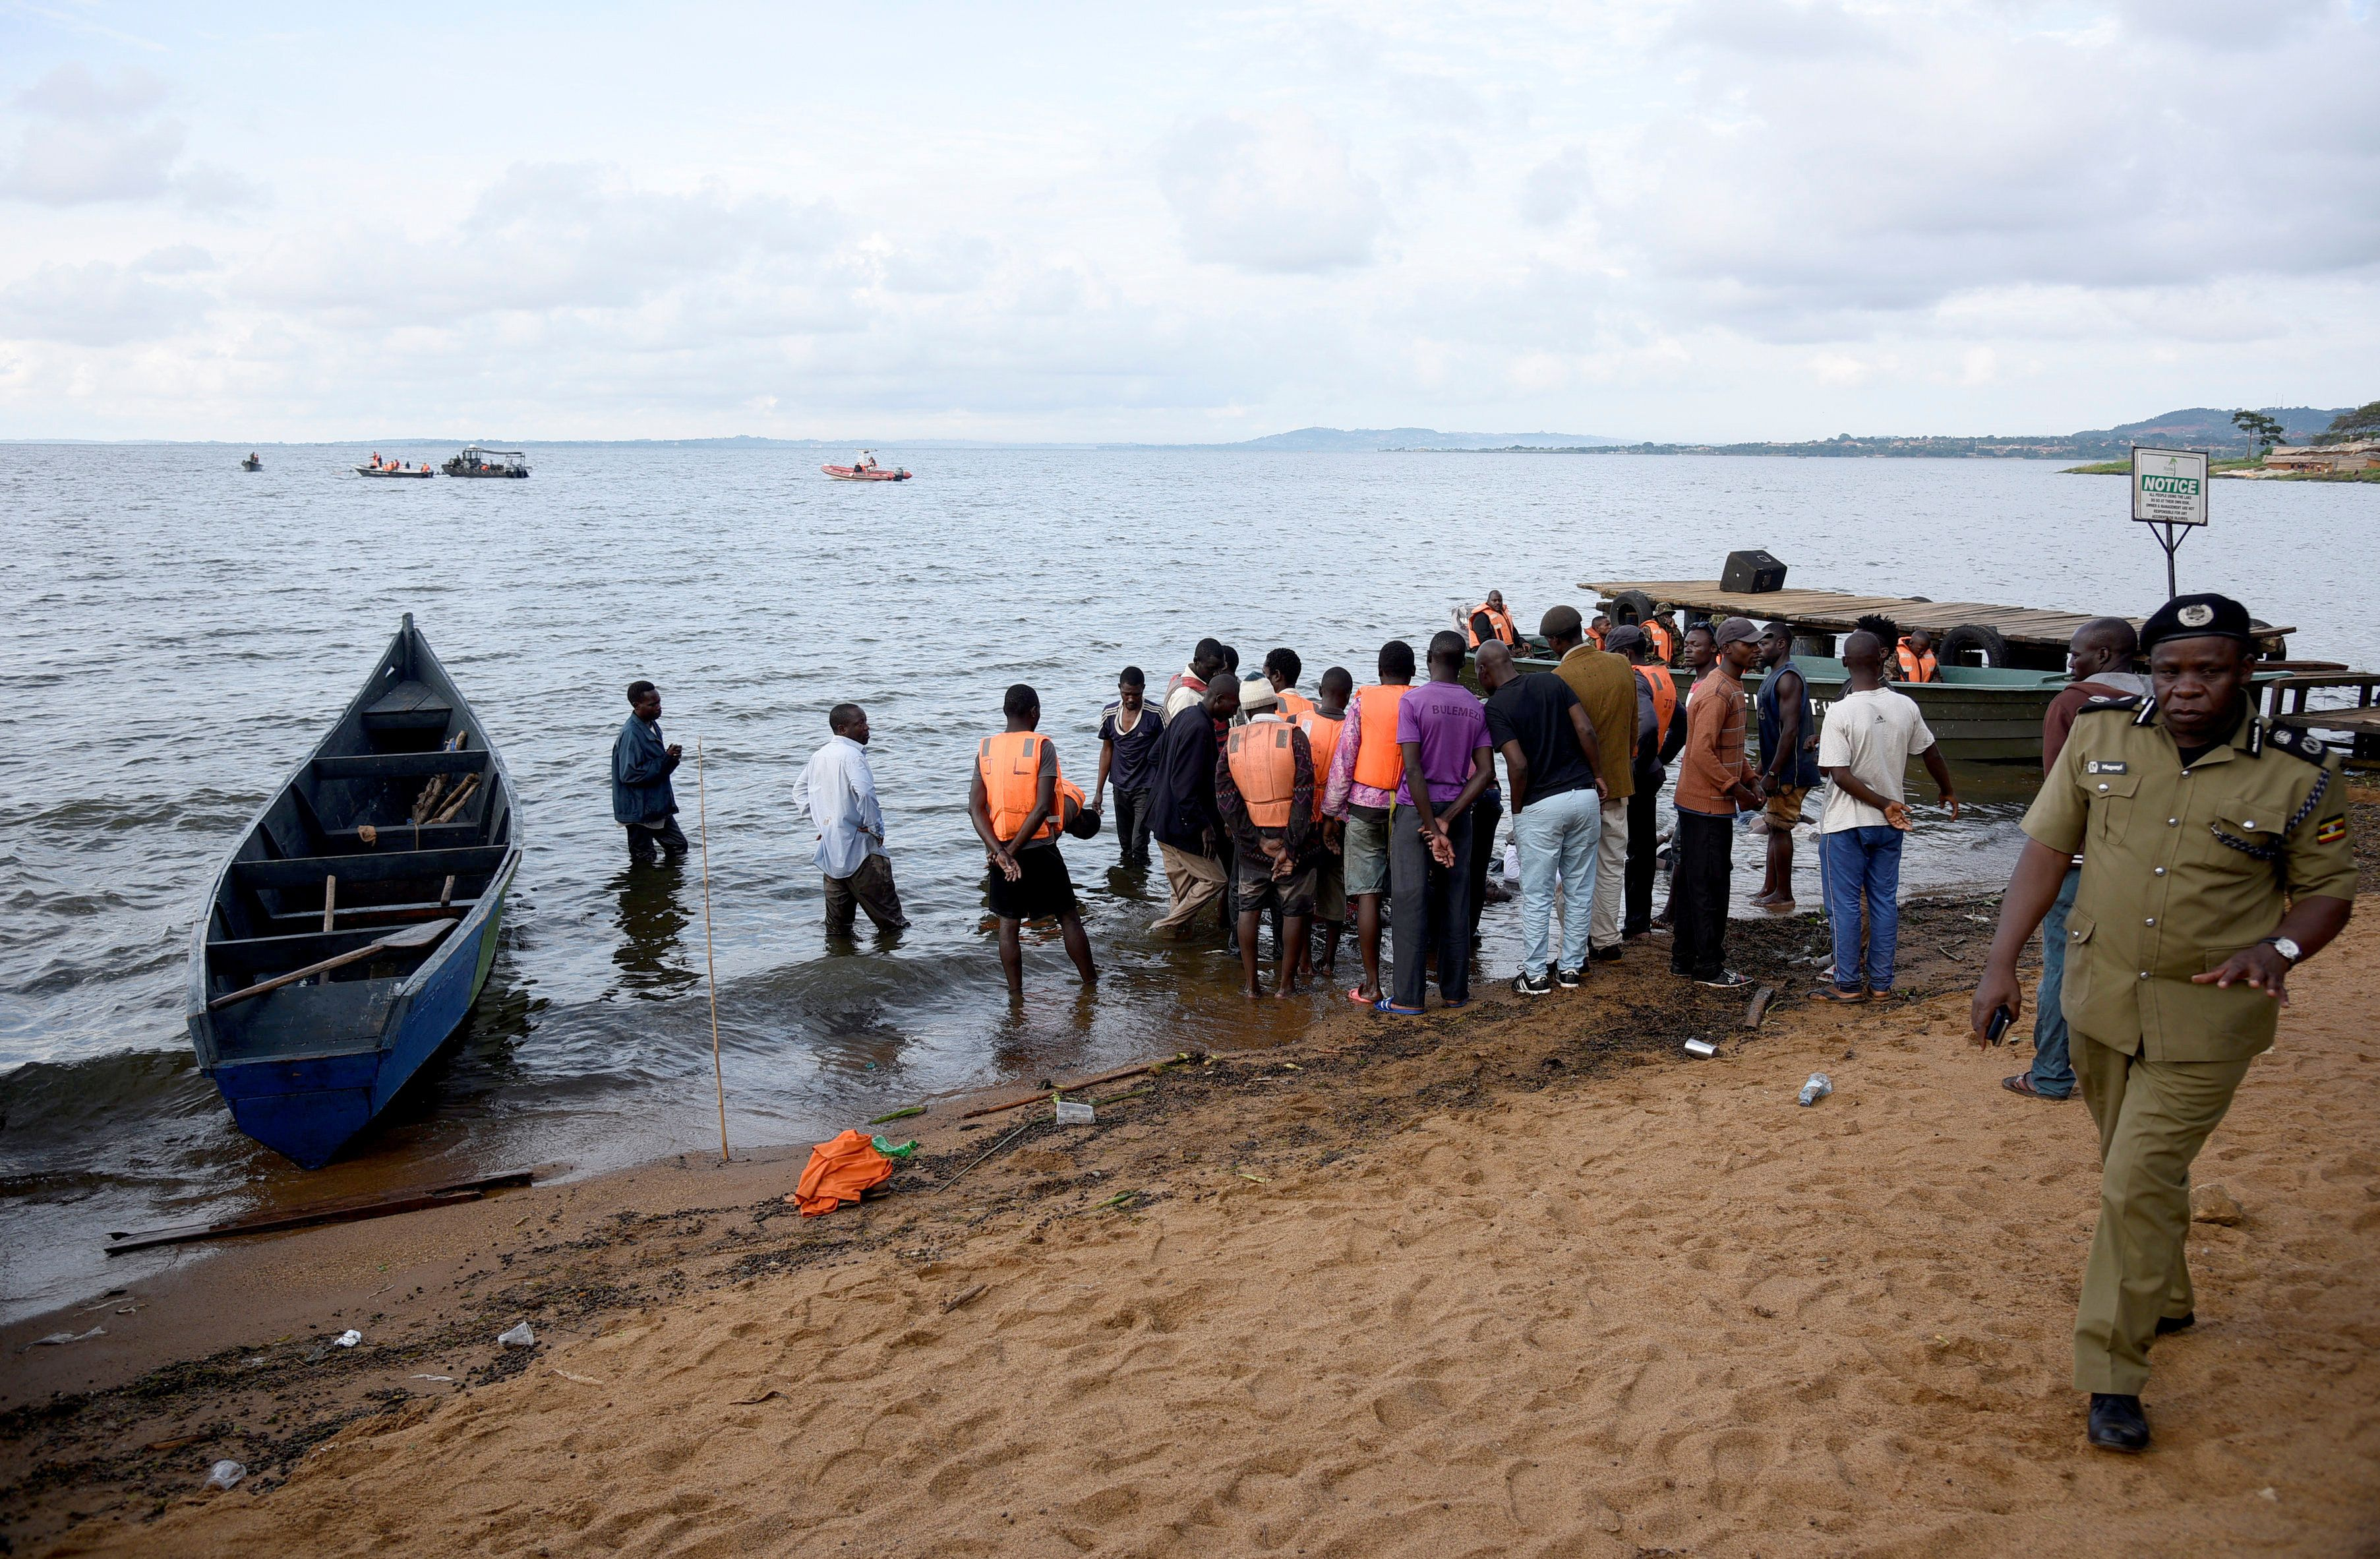 Uganda's Museveni says capsized cruise boat was overloaded, 29 dead